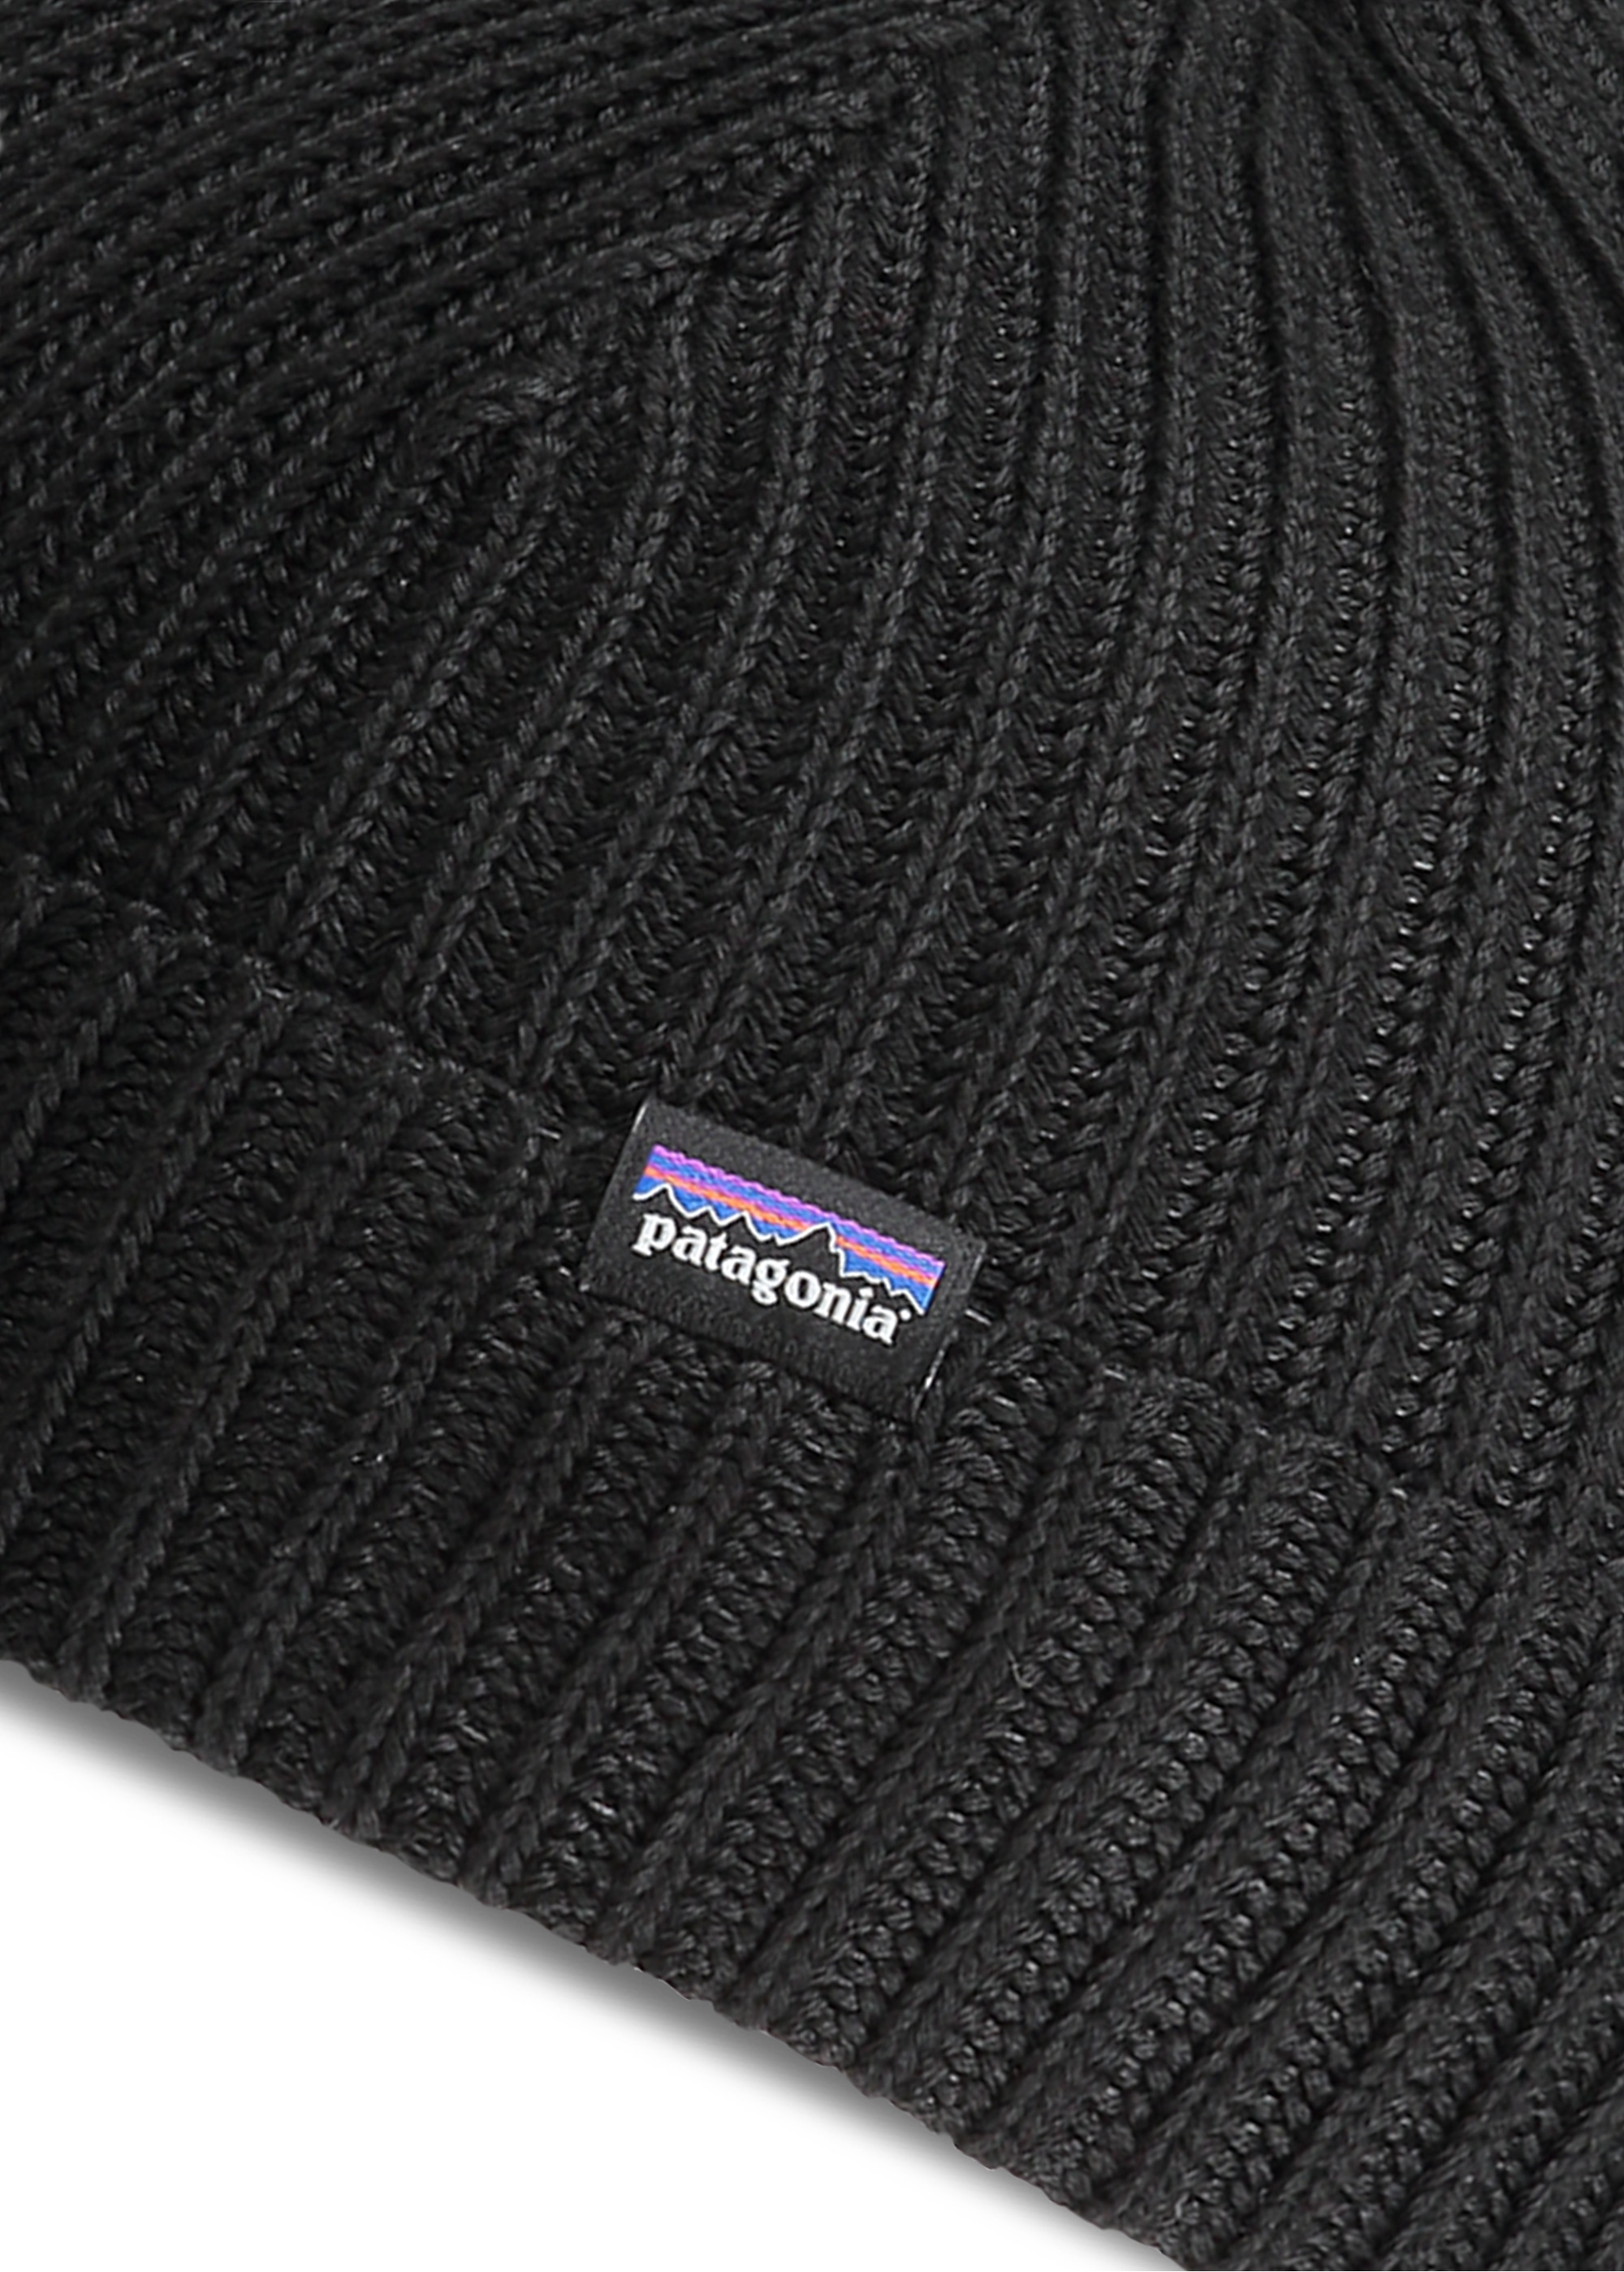 0eb4d240dc7 Patagonia Fishermans Rolled Beanie - Black - Headwear from Triads UK